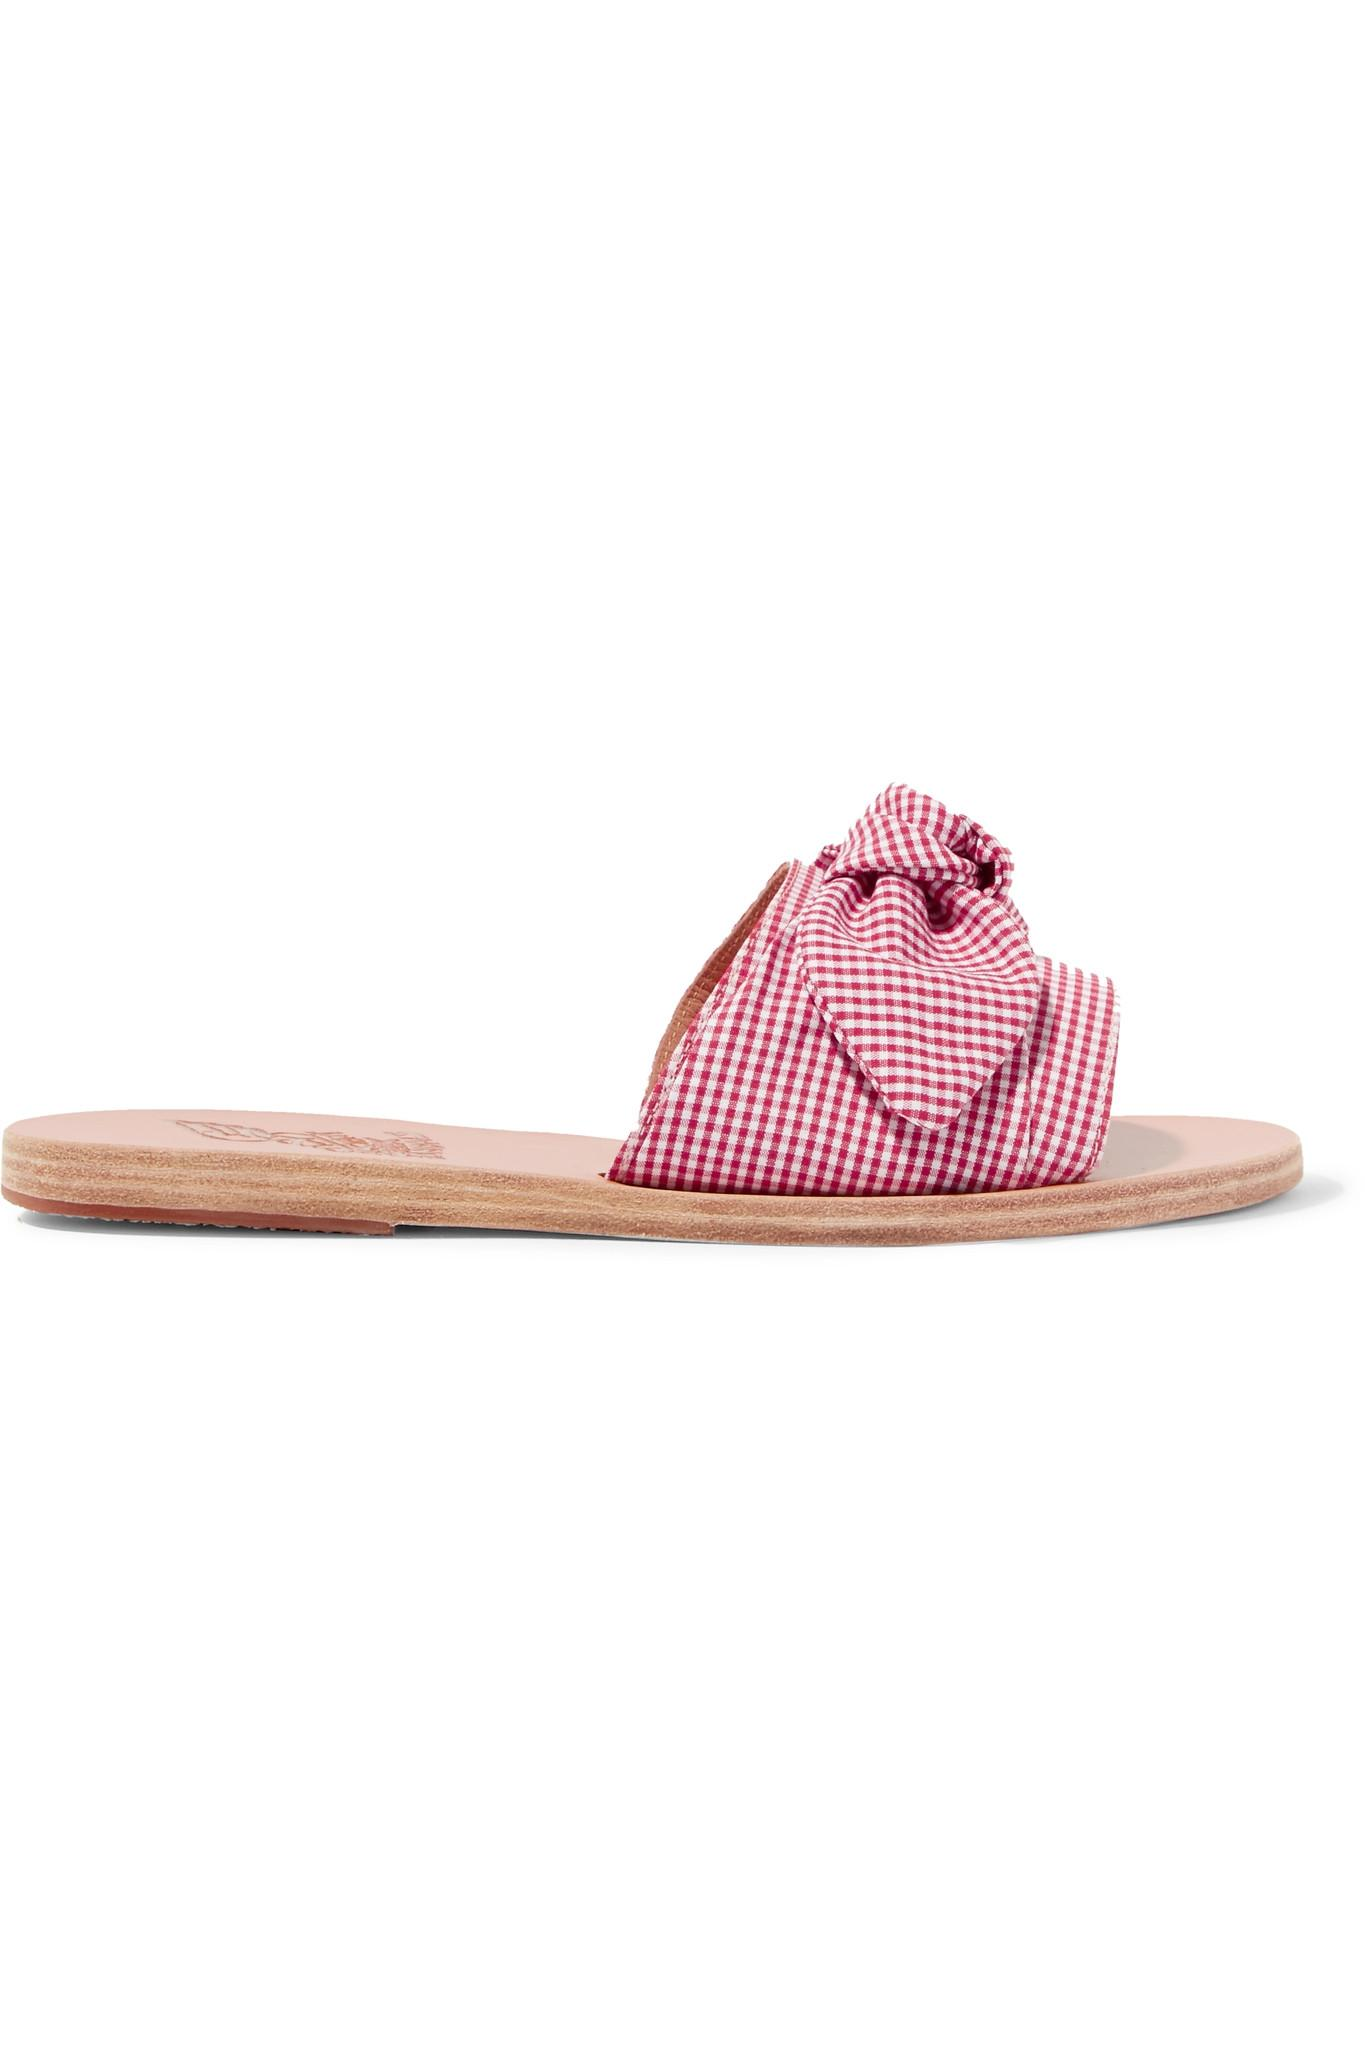 Outlet Visit Ancient Greek Sandals Taygete gingham cotton sandals Best Prices For Sale Faim0wl9